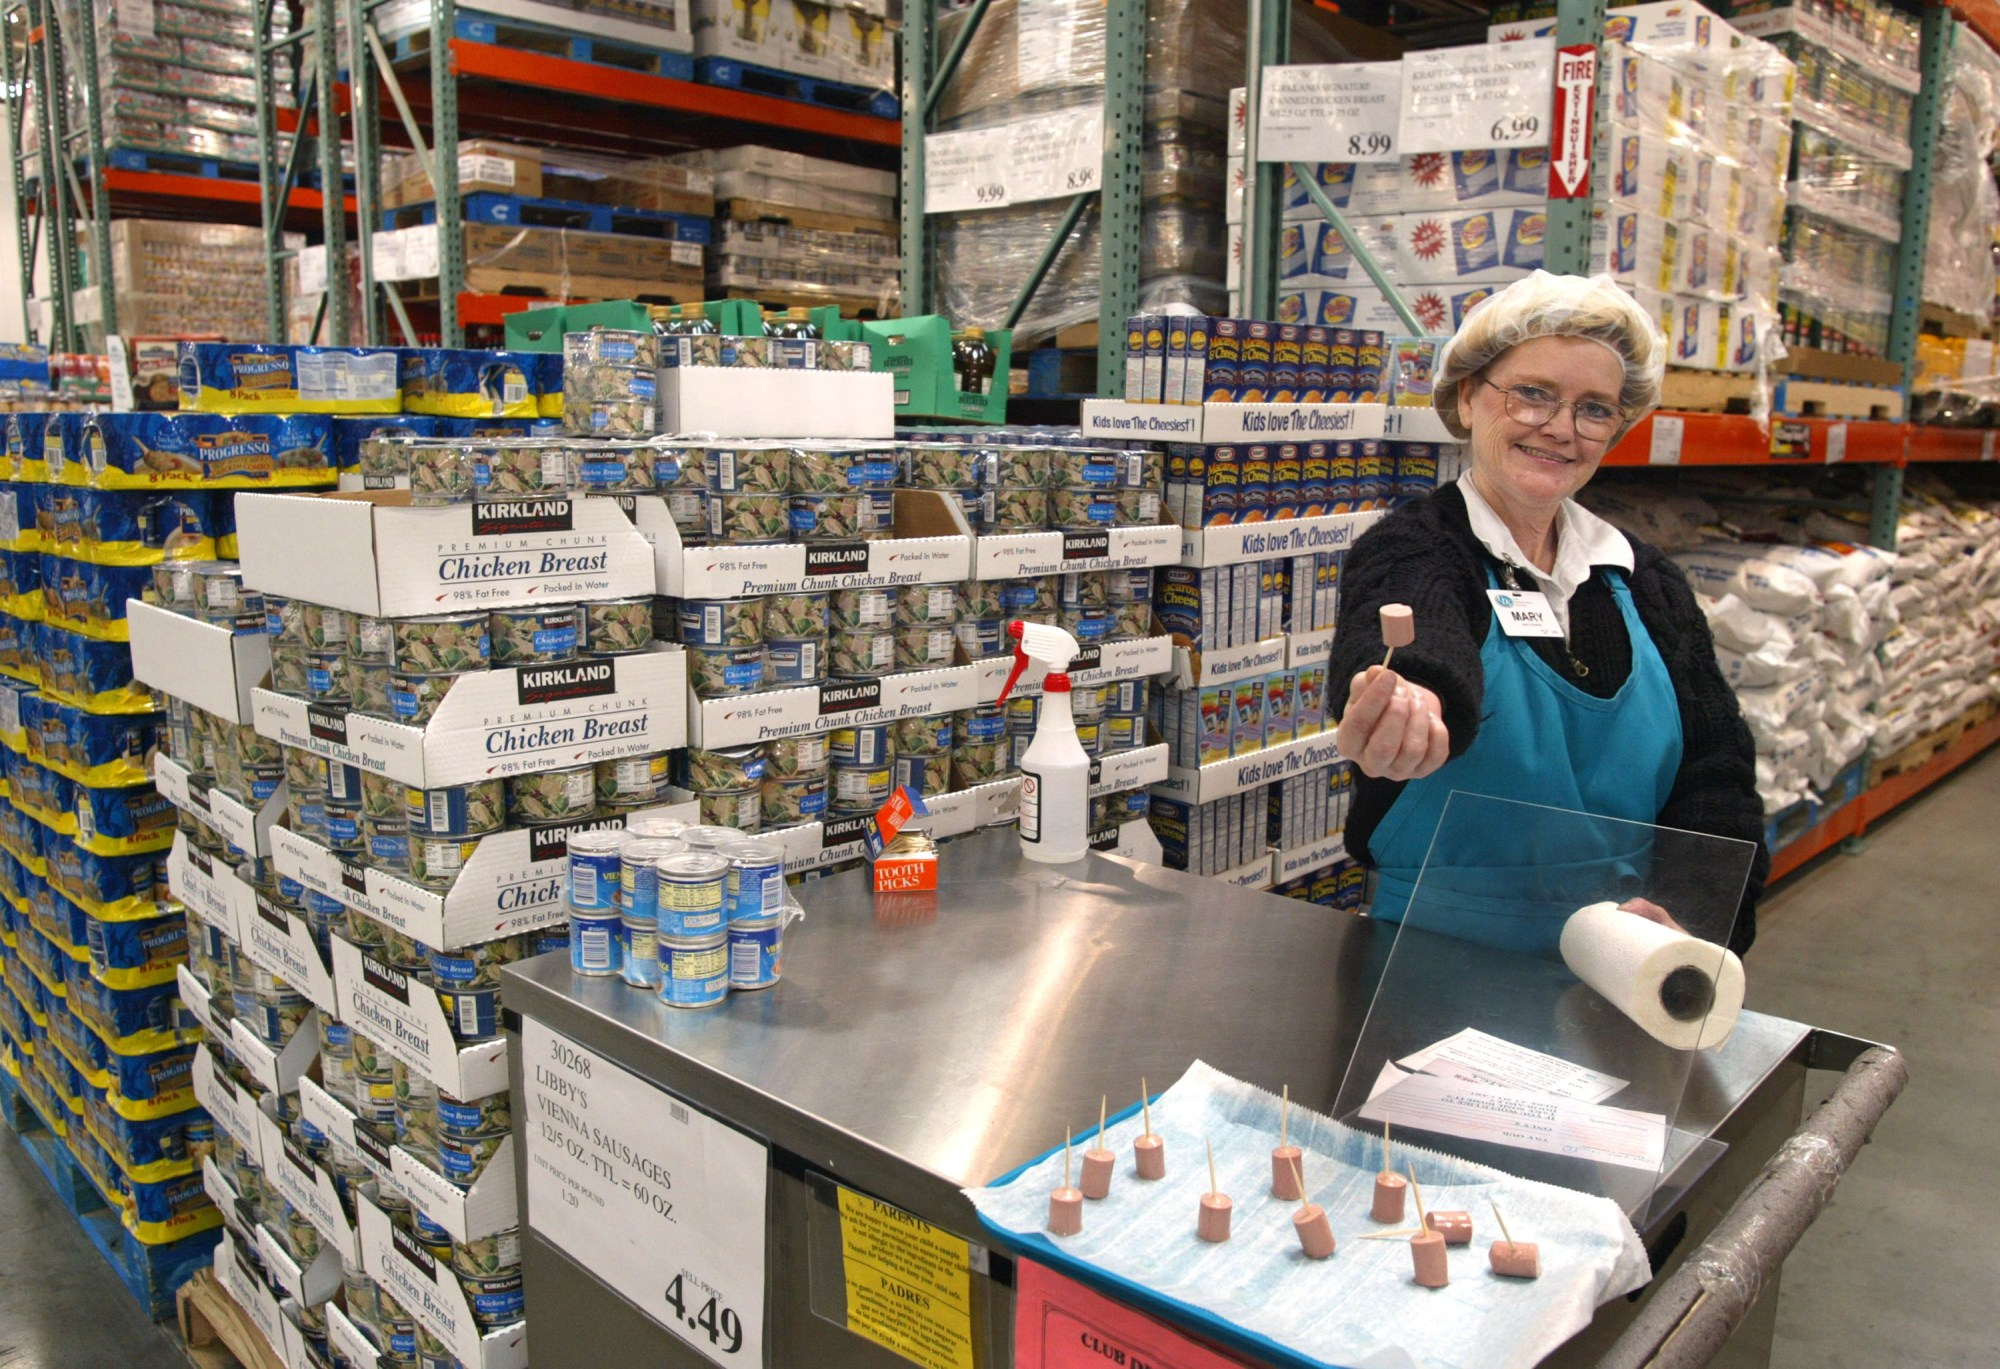 Mary LaRocca offers a sample of Libby's Vienna Sausage in a Costco Wholesale store March 8, 2002 in Niles, Illinois. (Tim Boyle/Getty Images)